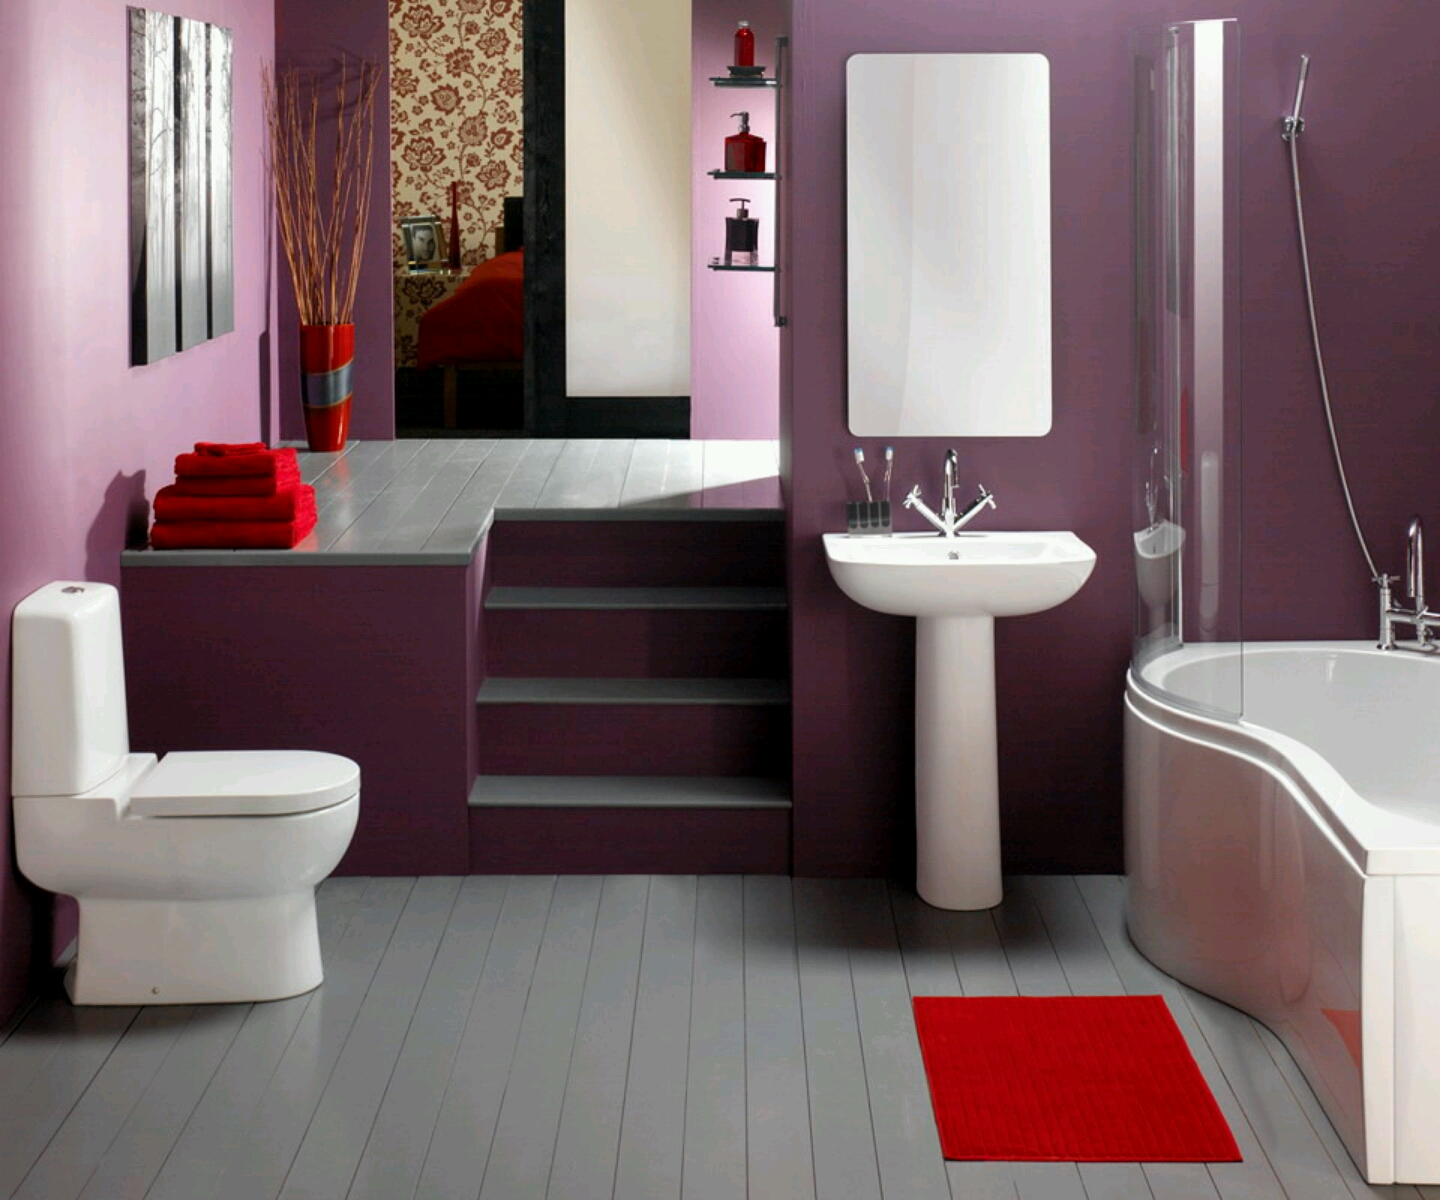 New home designs latest luxury modern bathrooms designs for Bathroom style ideas